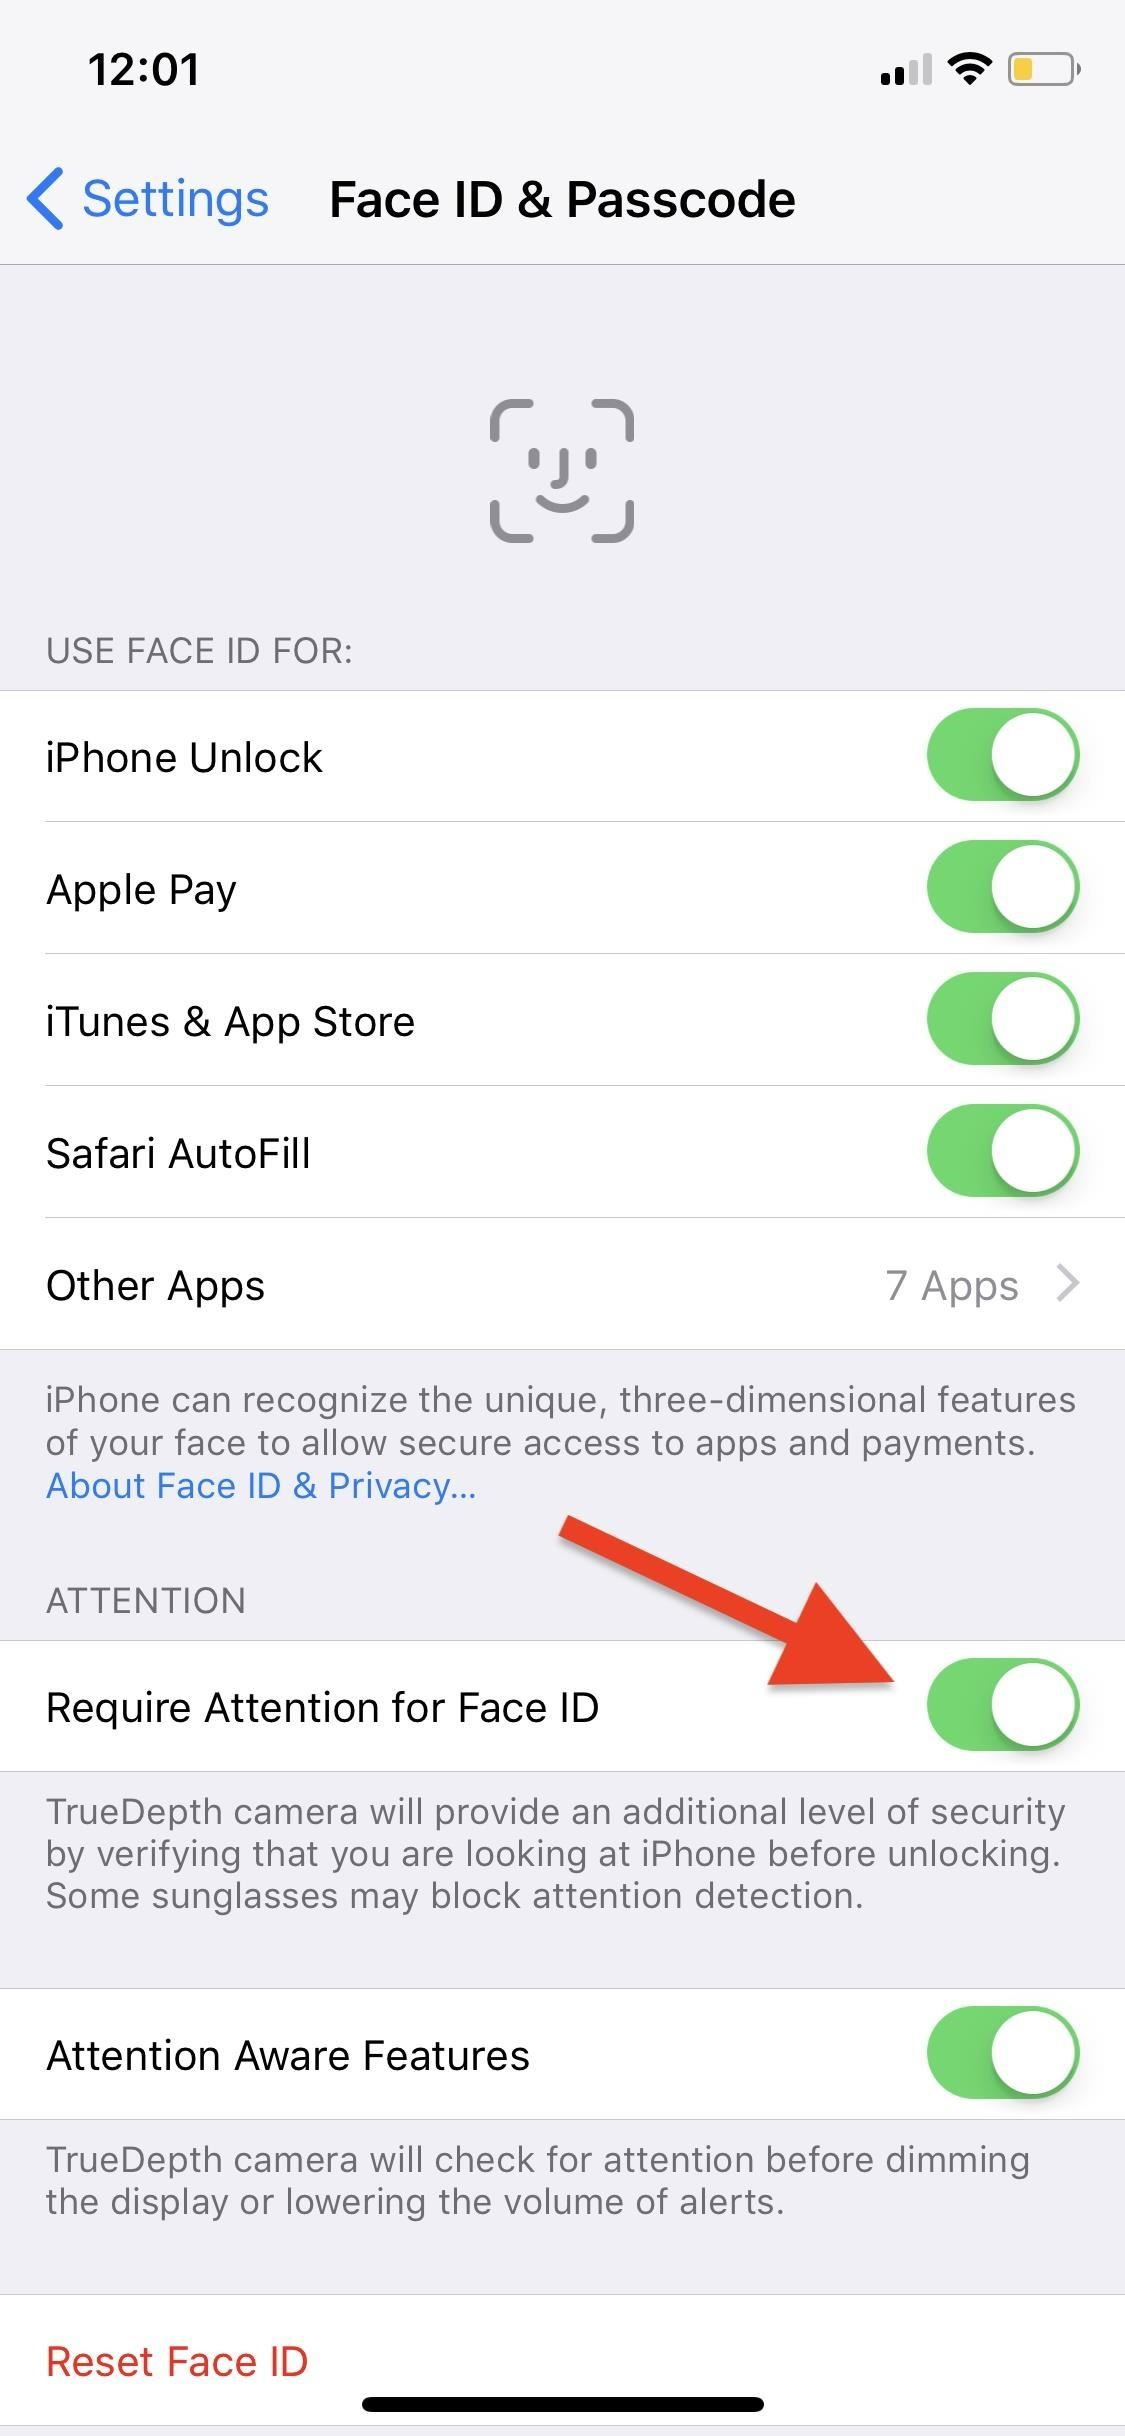 Tips to Make Face ID Work Every Time on Your iPhone